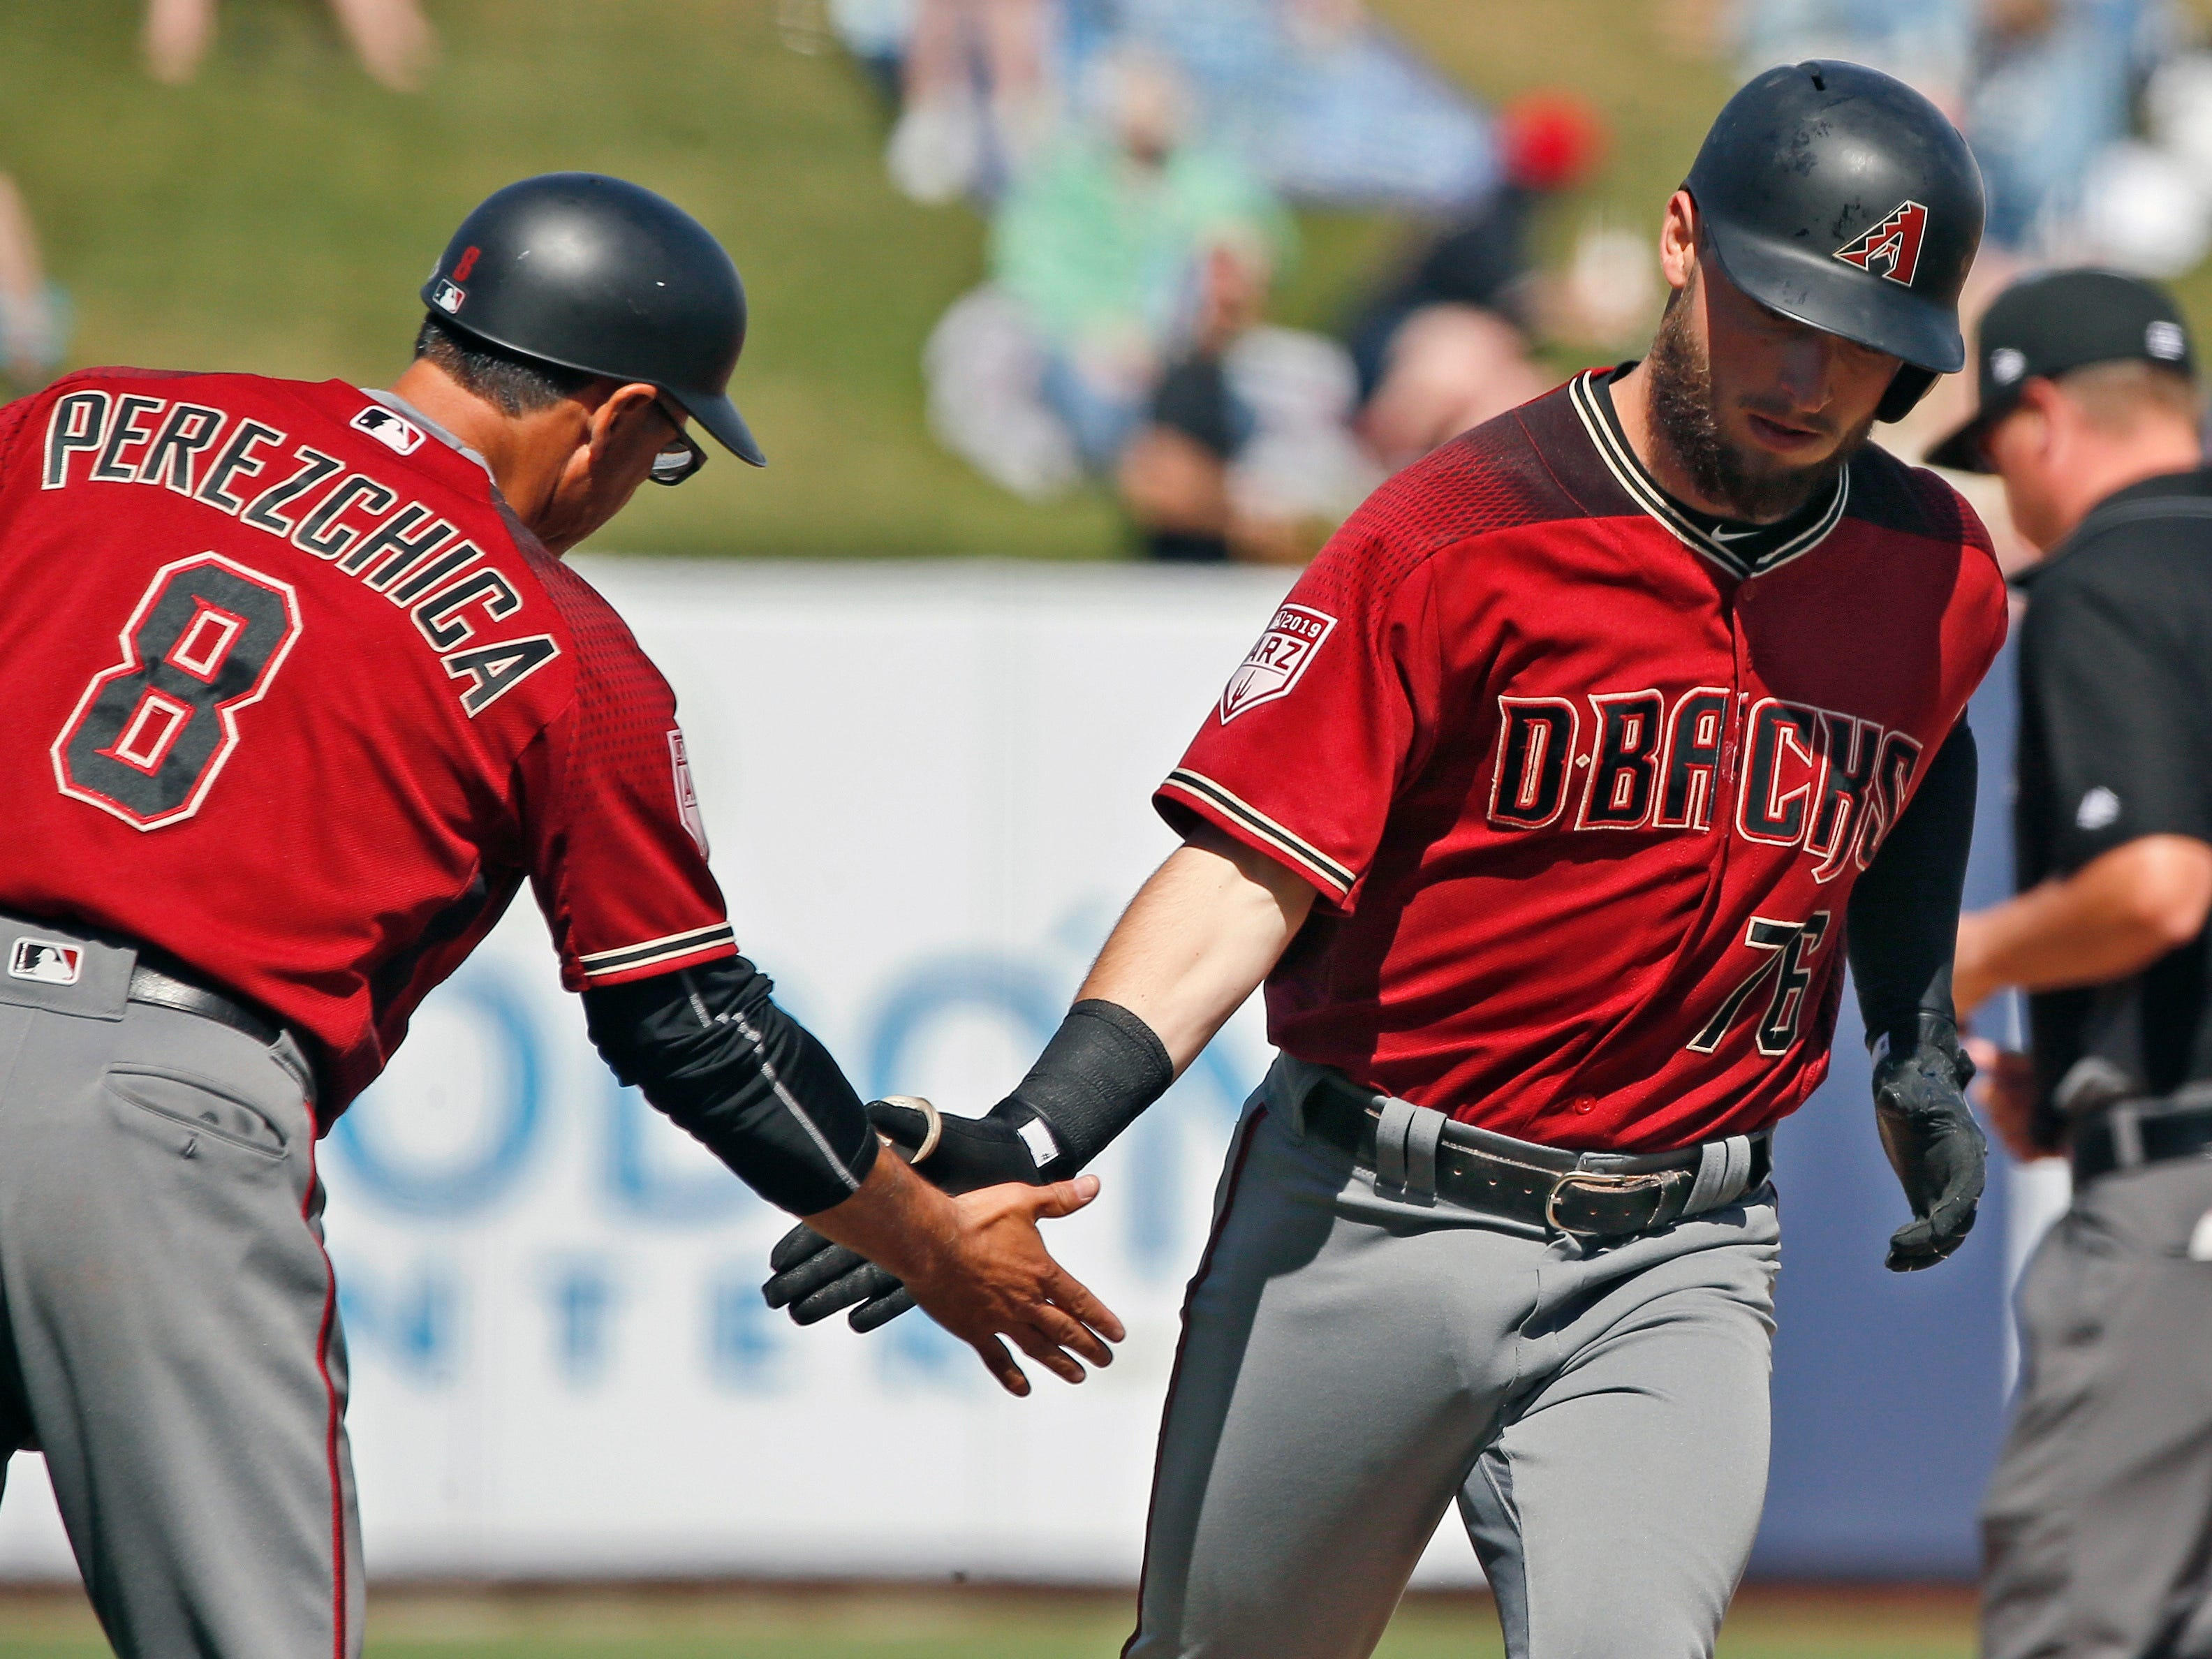 Arizona Diamondbacks' Wyatt Mathisen (76) is congratulated by third base coach Tony Perezchica (8) after hitting a solo home run in the seventh inning of a spring training baseball game against the Milwaukee Brewers, Friday, March 8, 2019, in Phoenix.